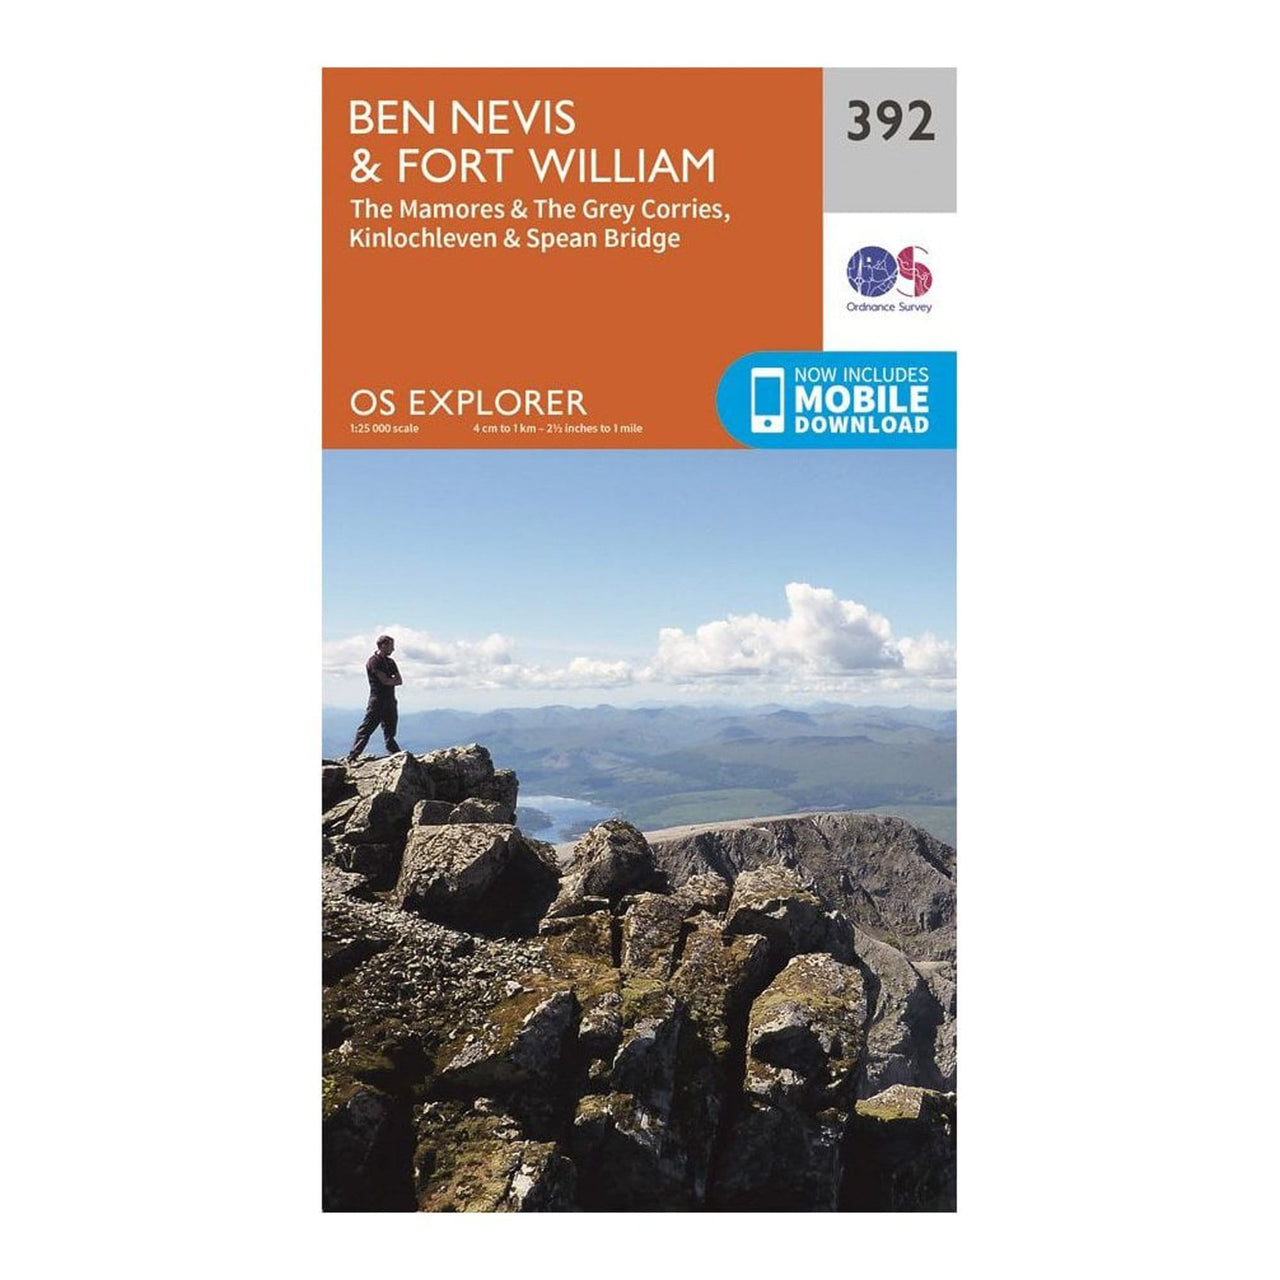 OS Explorer Maps: Ben Nevis and Fort William